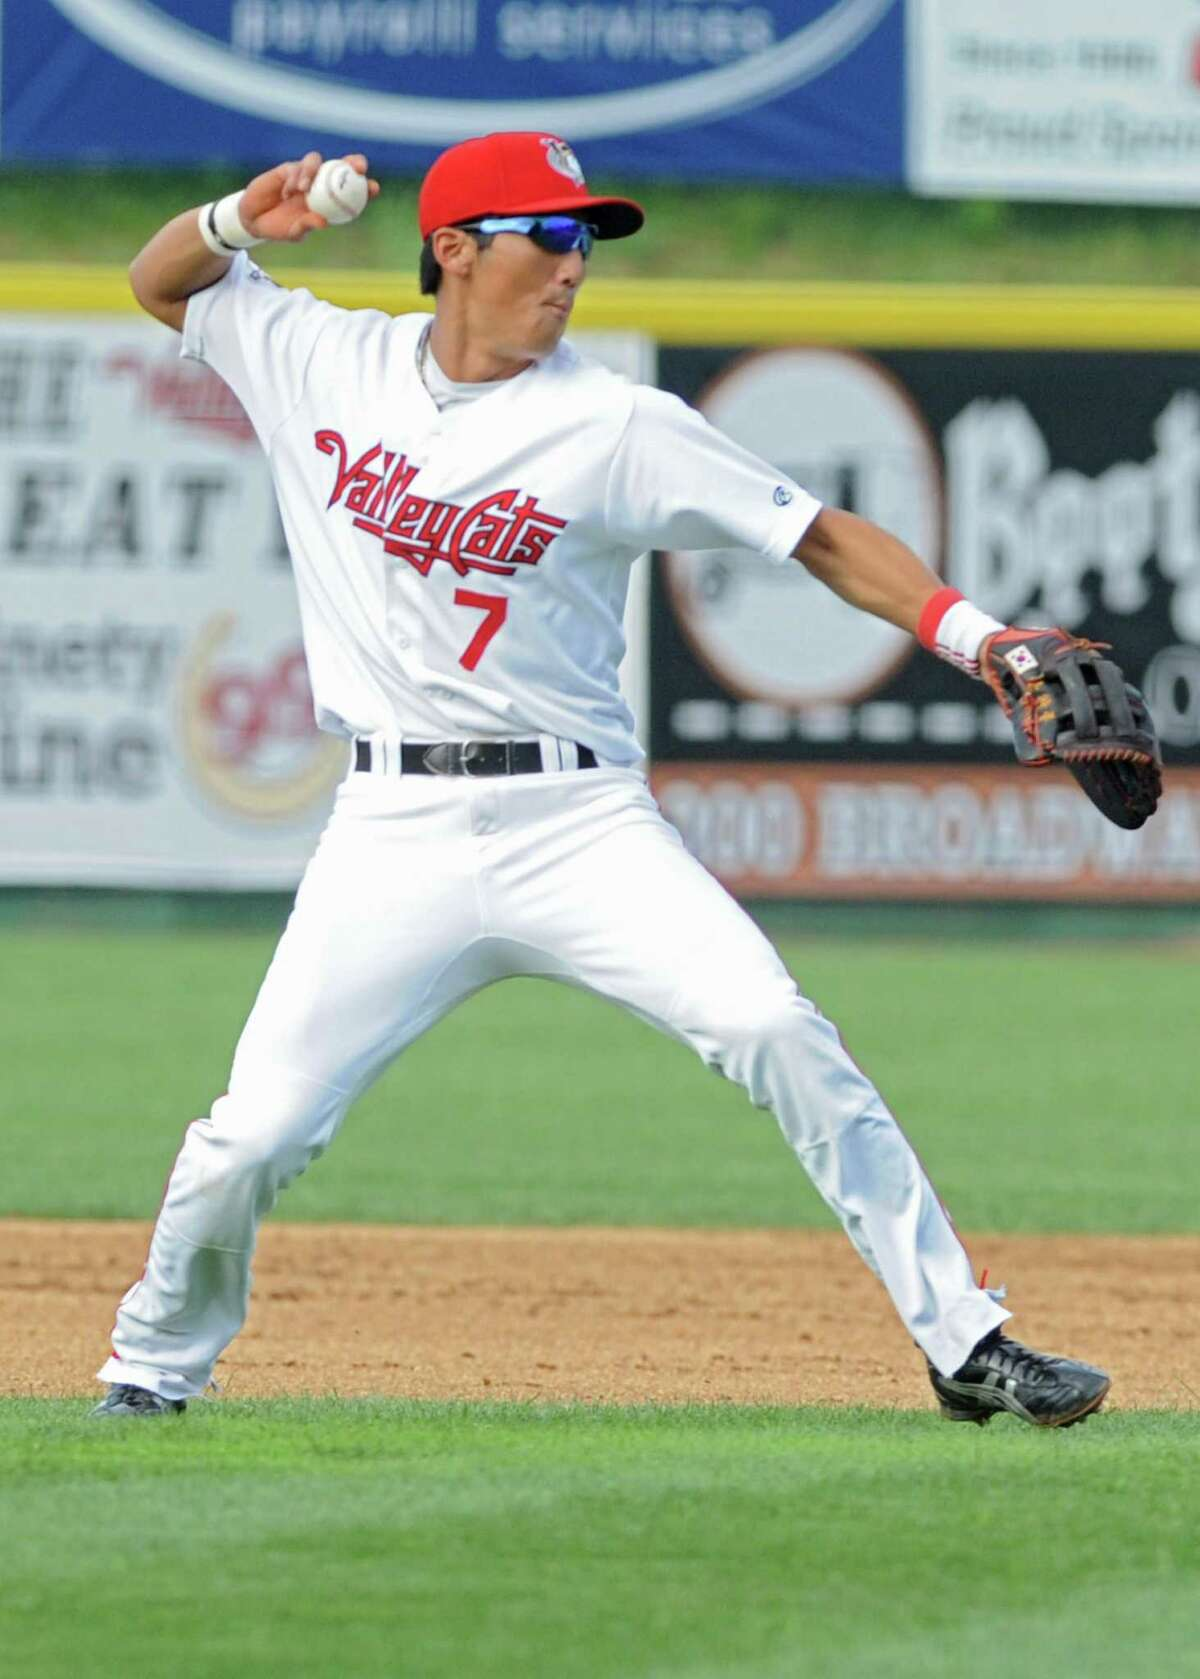 Tri-City ValleyCats shortstop Chan Moon gets the runner out at first base during a baseball game against the Brooklyn Cyclones at Joe Bruno Stadium on Monday, Sept. 2, 2013 in Troy, N.Y. (Lori Van Buren / Times Union)